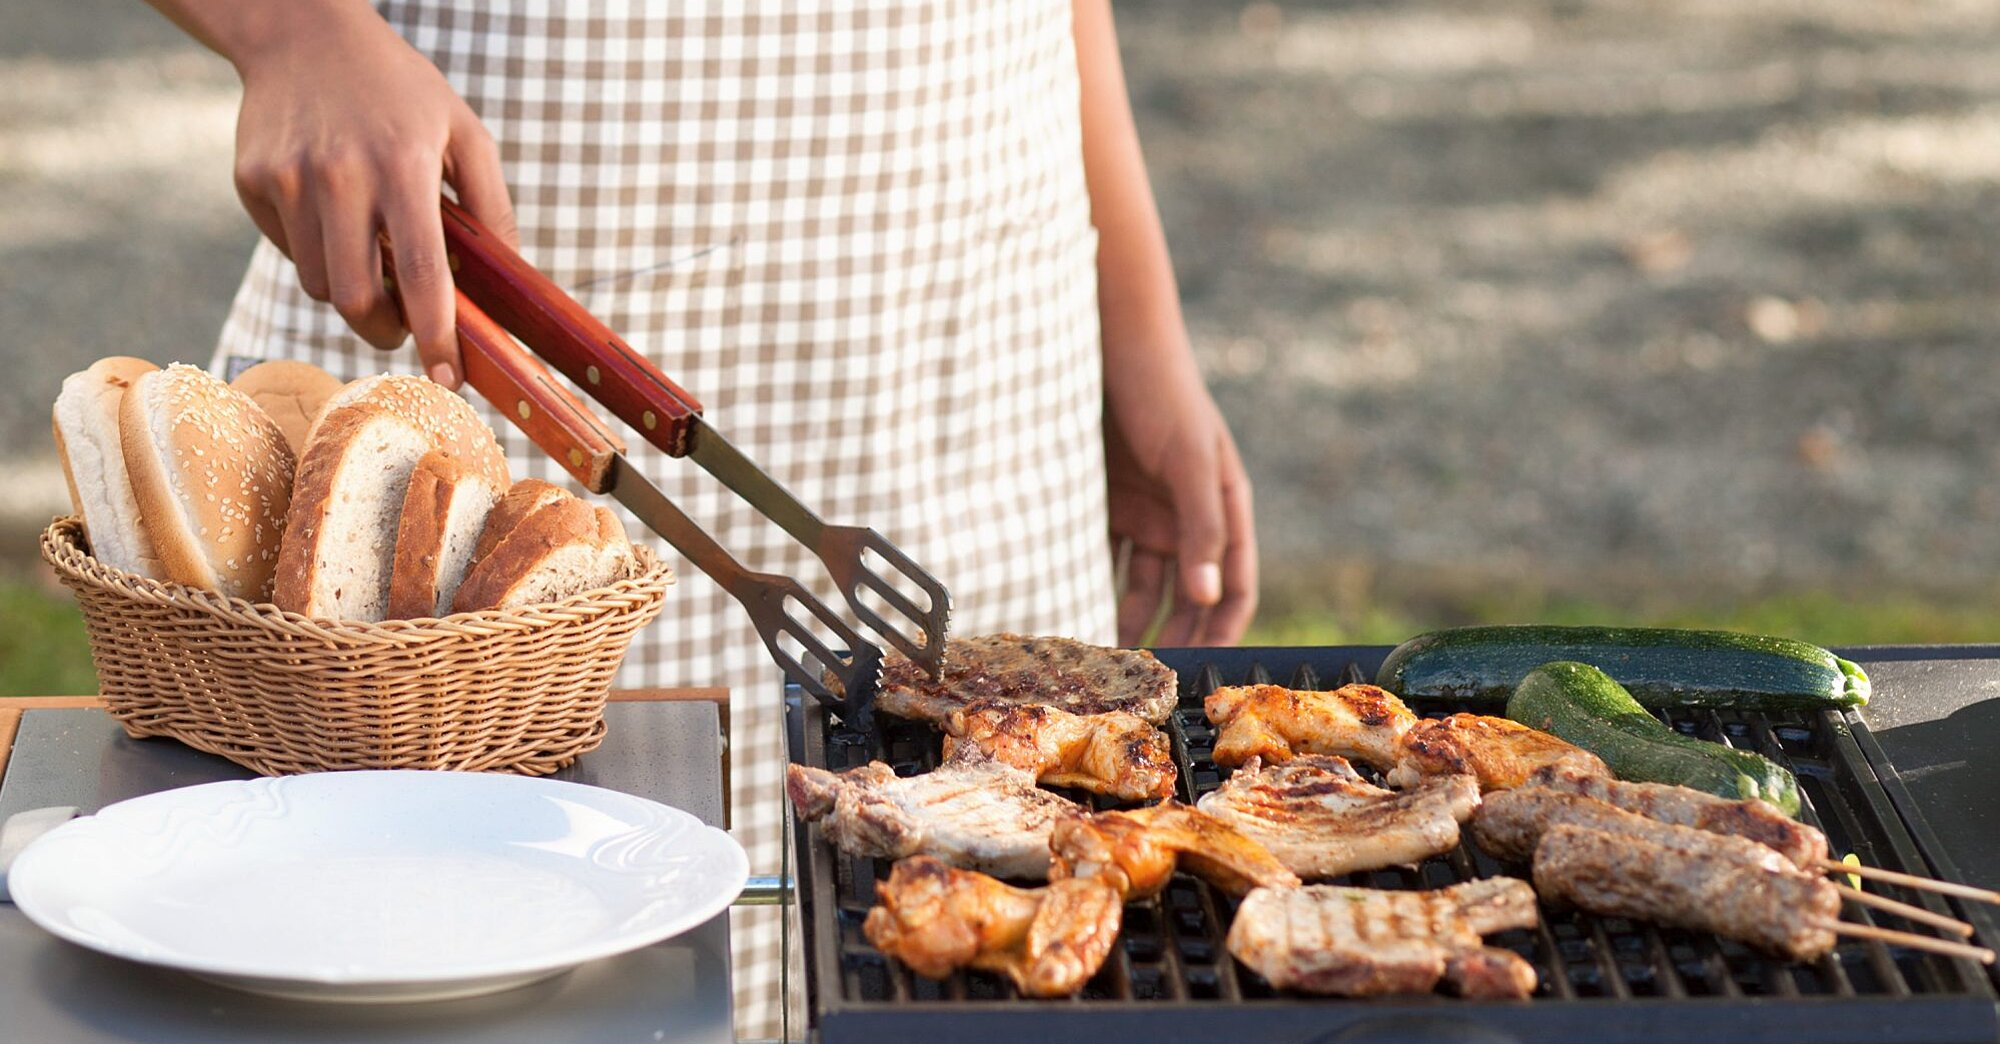 14 Grilling Hacks That Will Make You Look Like a Pro